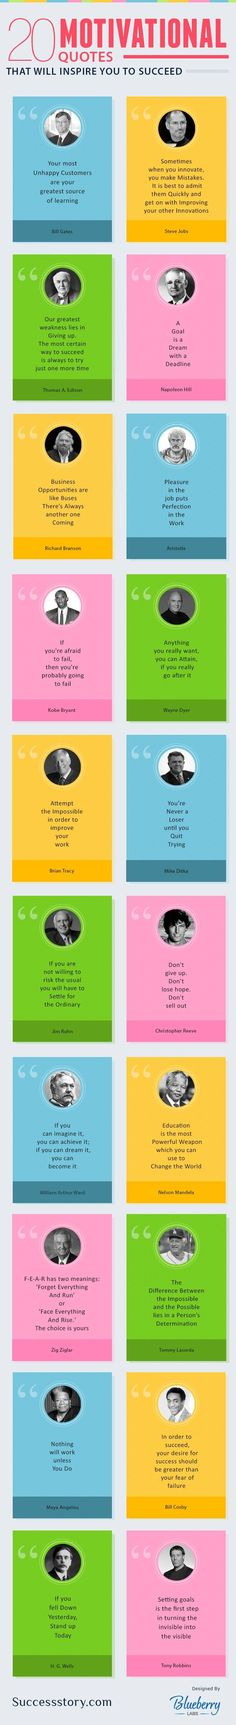 20 Motivational Quotes from Legendary Entrepreneurs, Leaders and Visionaries (Infographic)